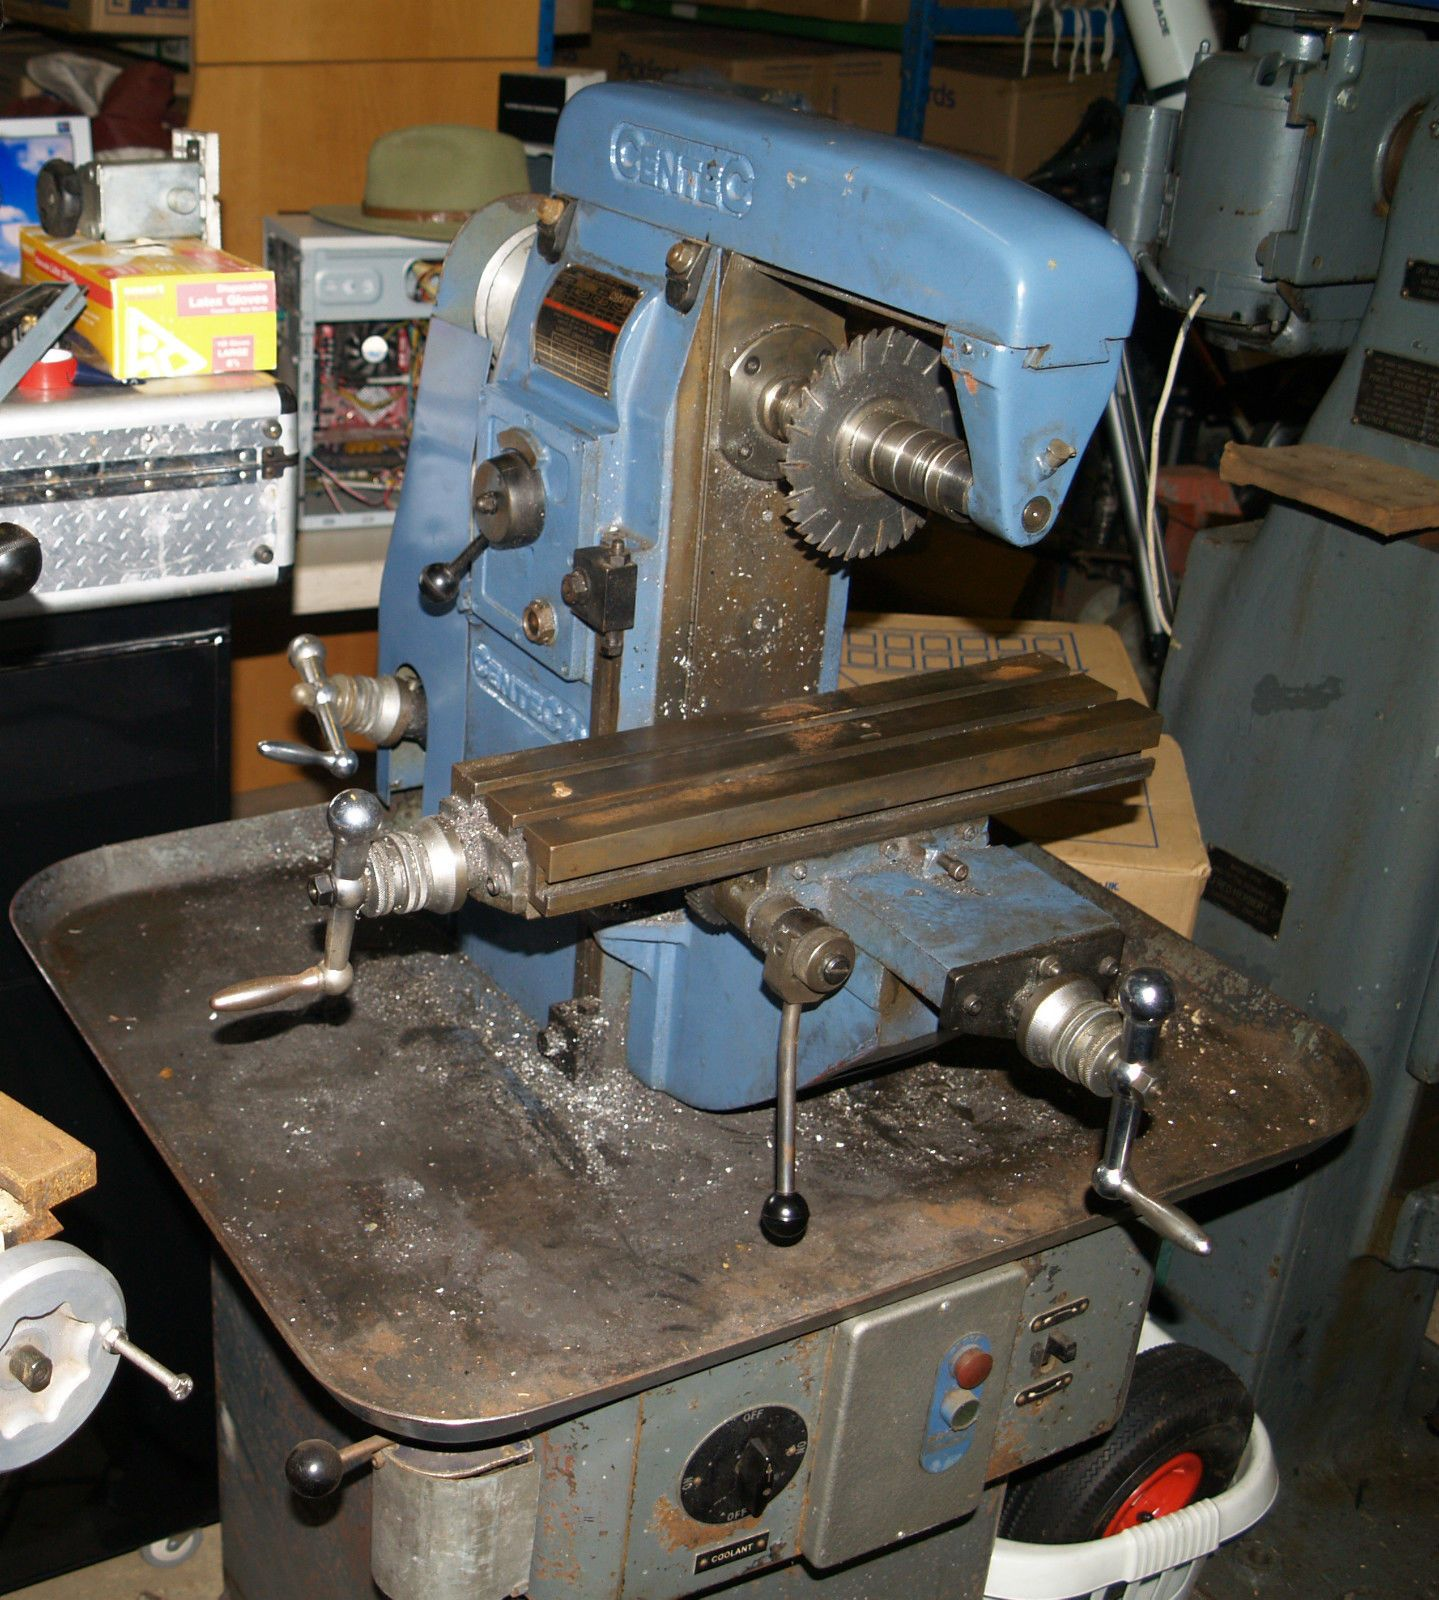 Used Milling Machines Ebay >> Centec 2a Milling Machine Ebay Other Machine Tools Milling